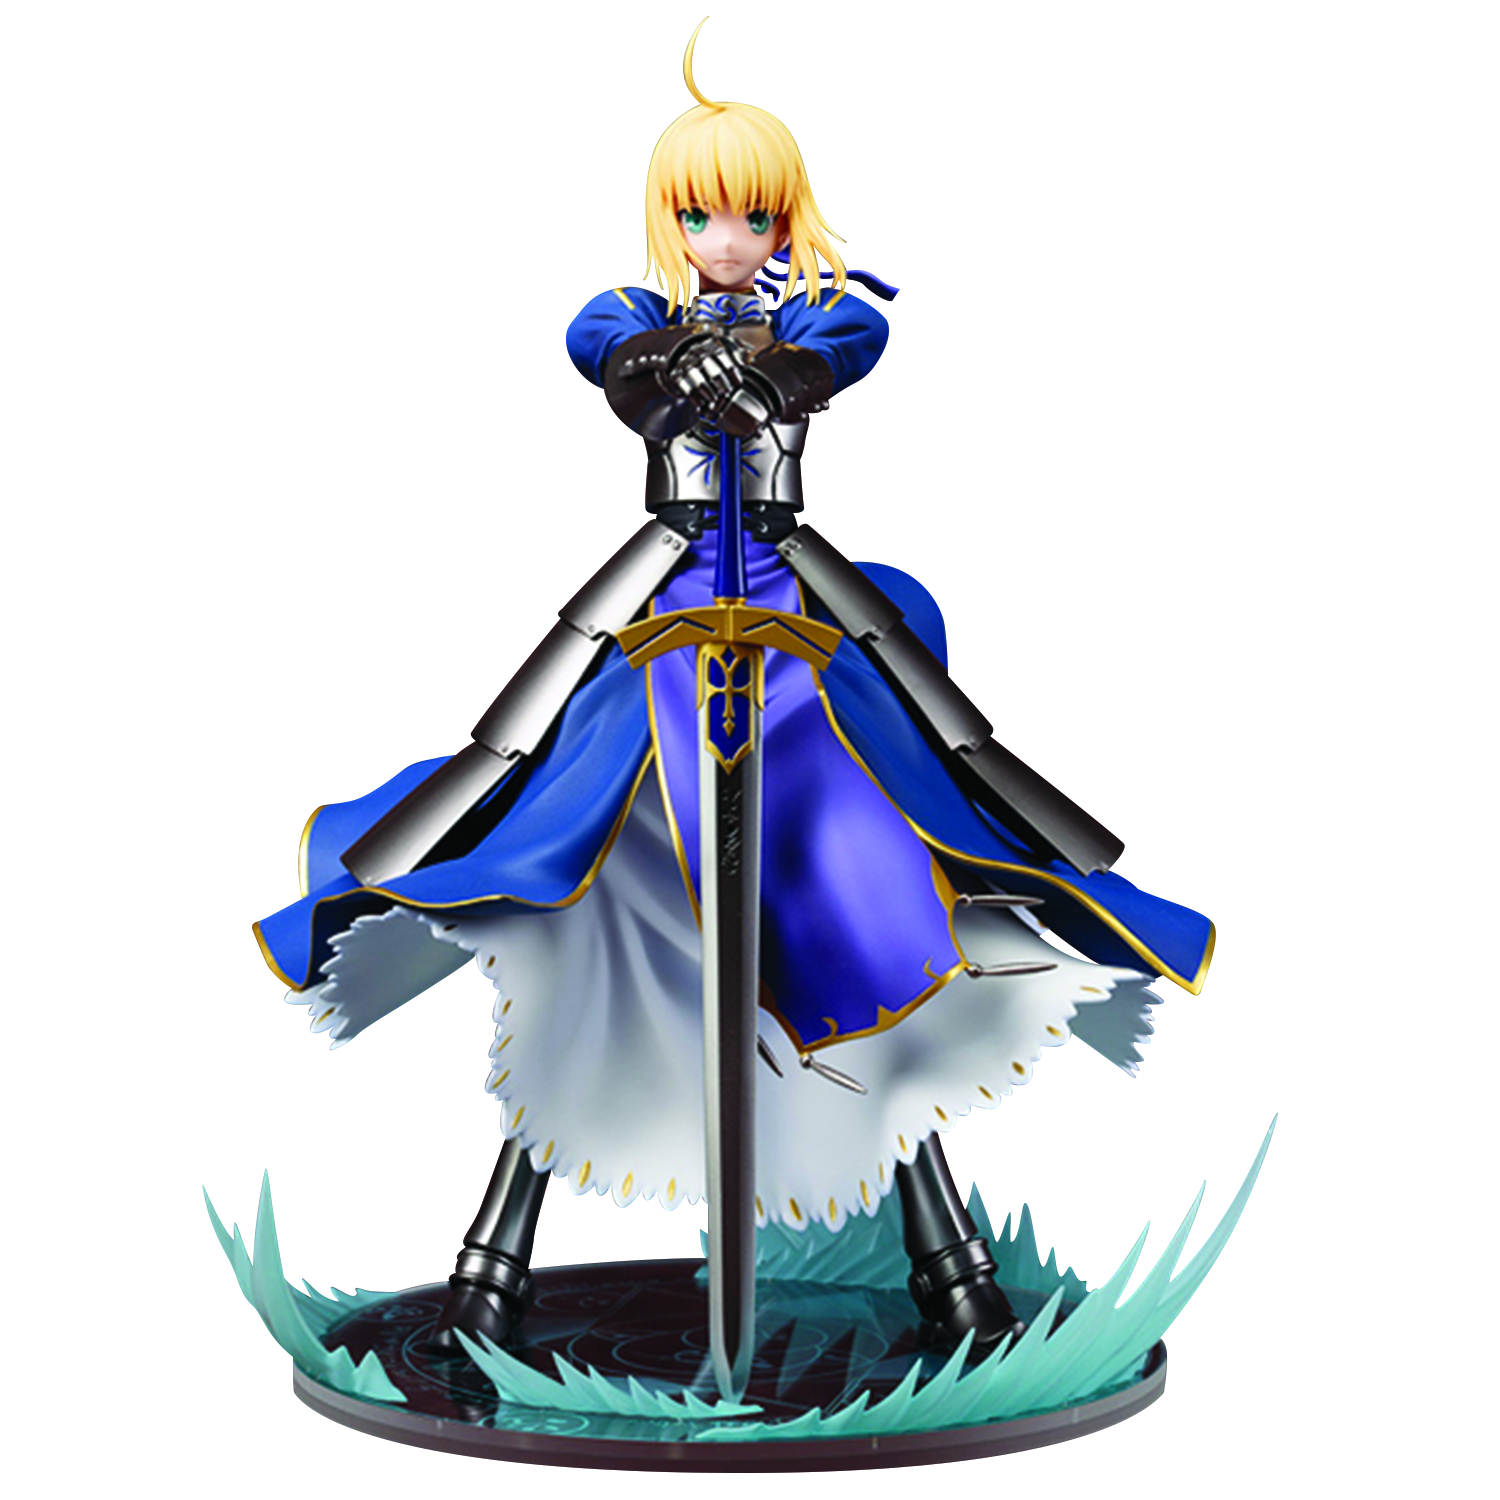 FATE/STAY NIGHT KING OF KNIGHTS SABER ANI-STATUE